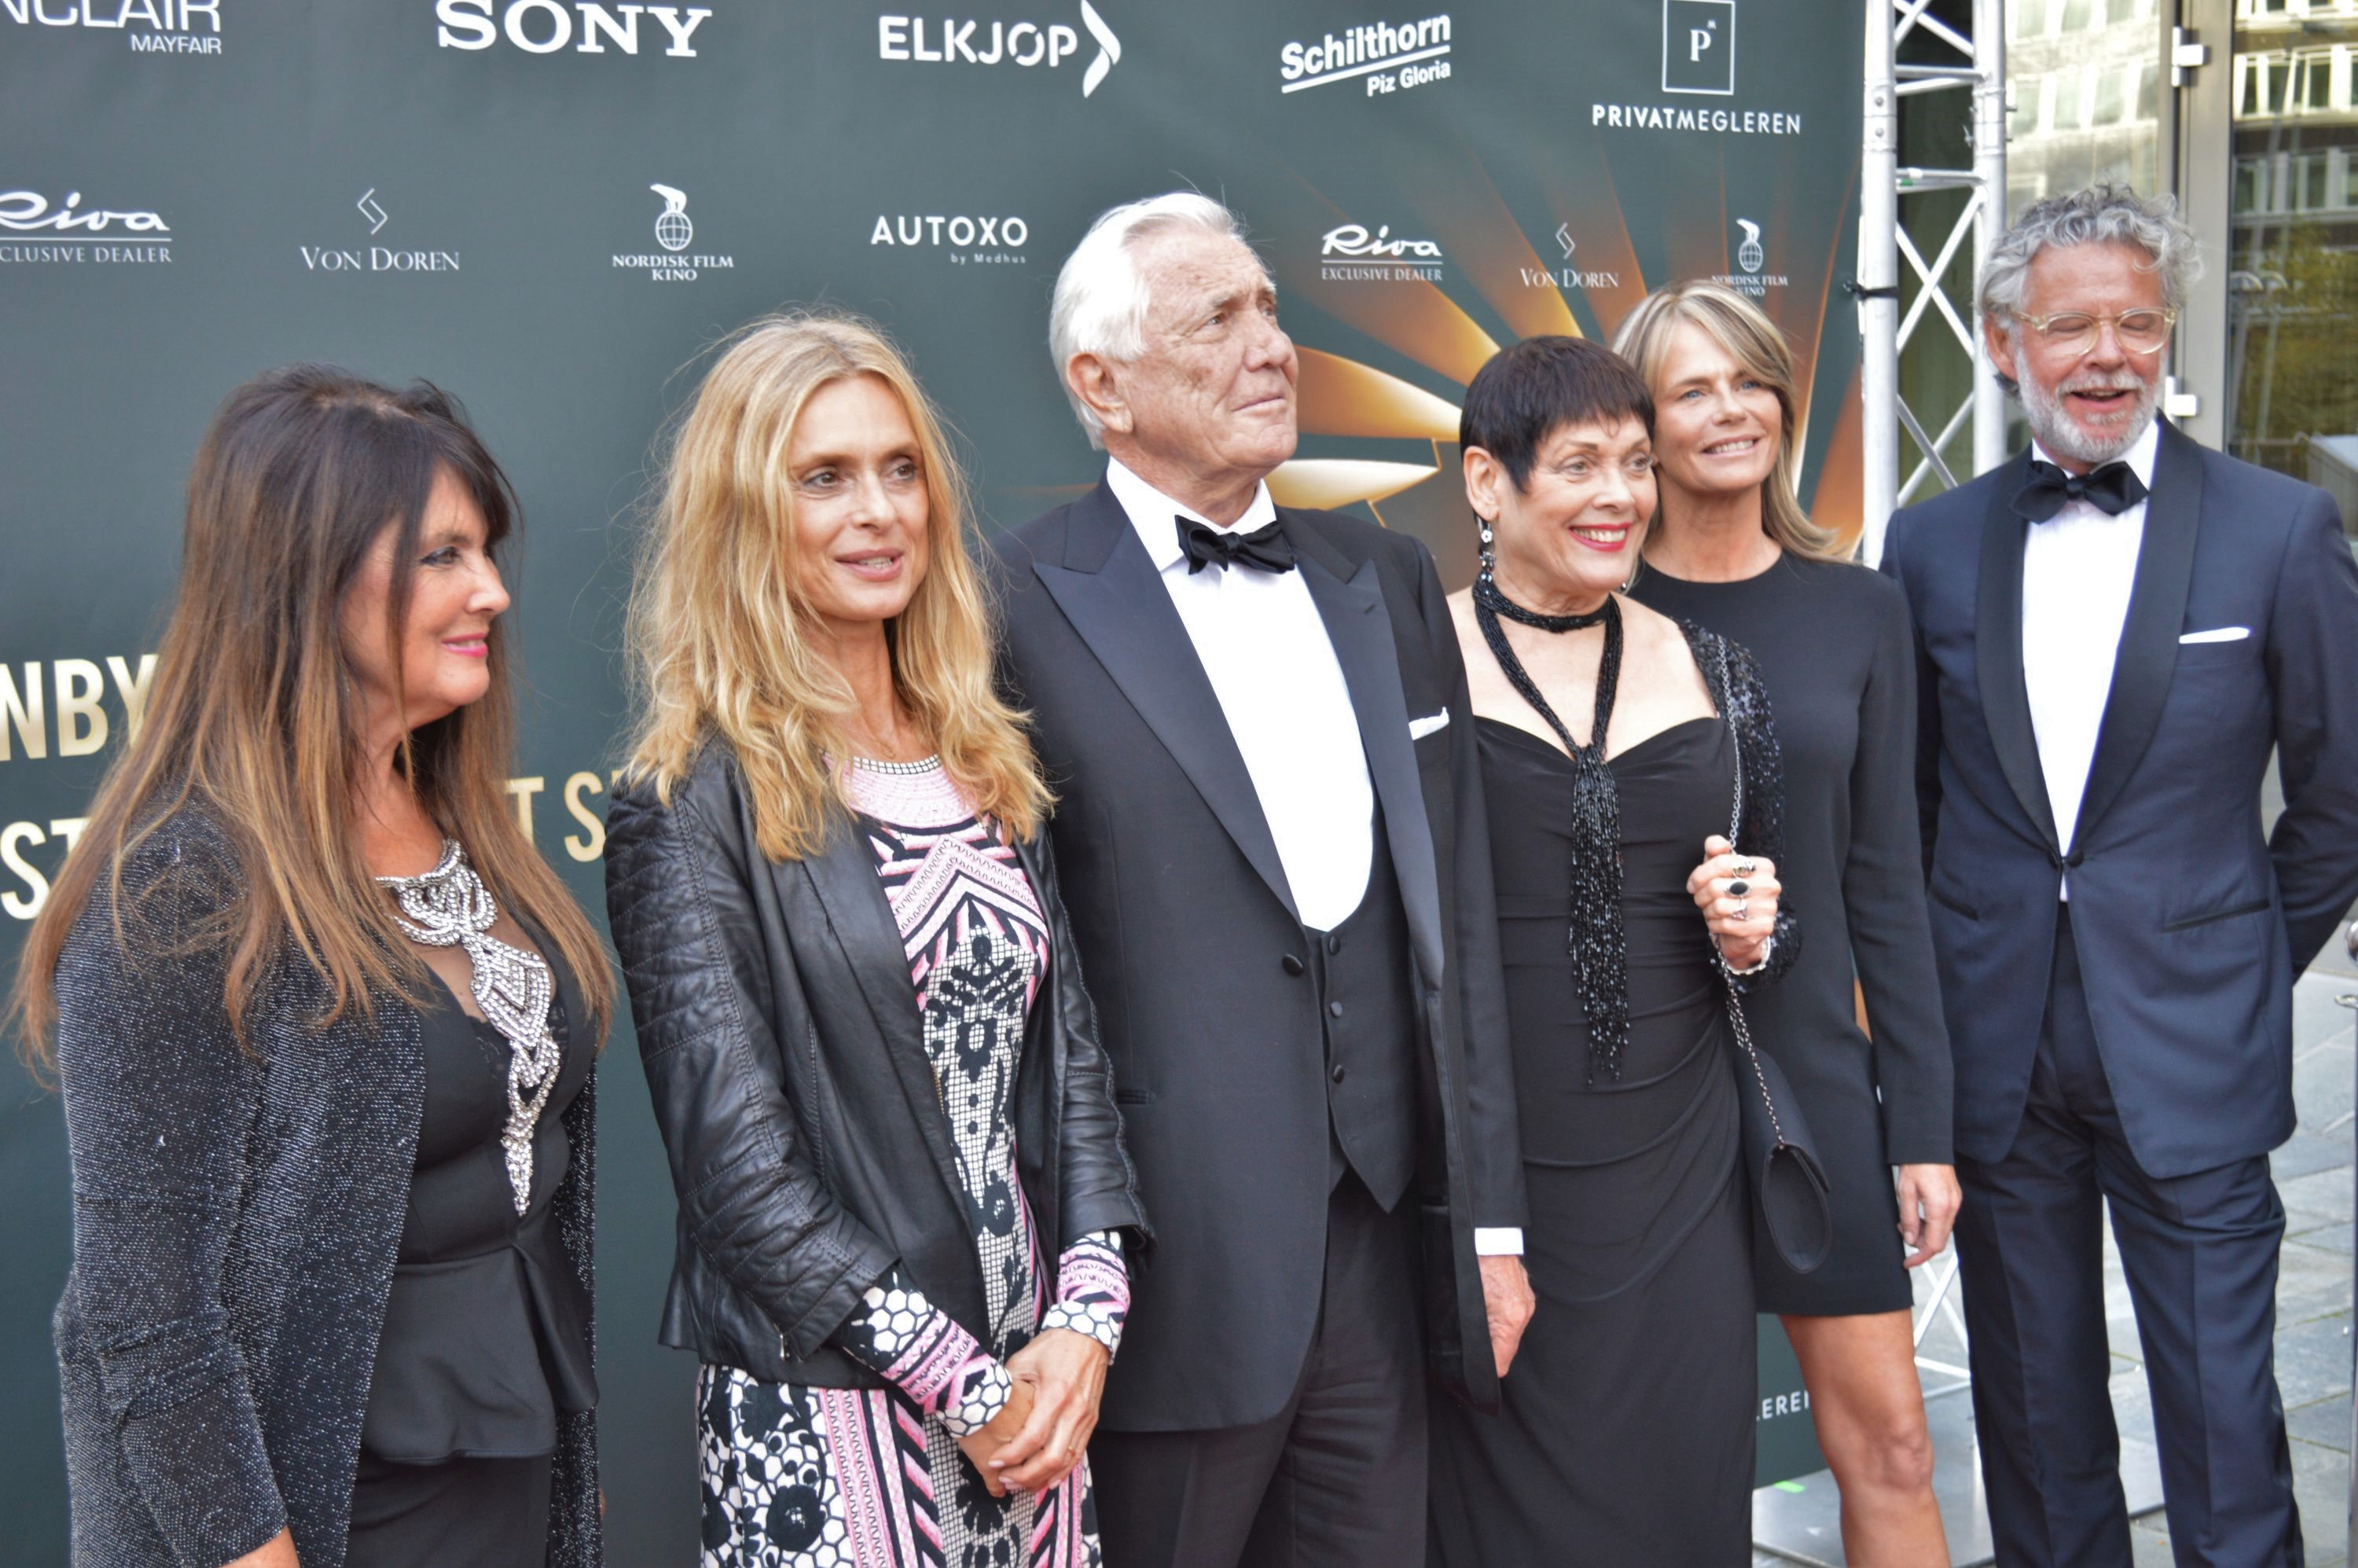 Caroline Munro, Maryam d'Abo, George Lazenby, Martine Beswick, Serena Scott Thomas and David Mason in Oslo 01.09.2016 - © Brian Iskov